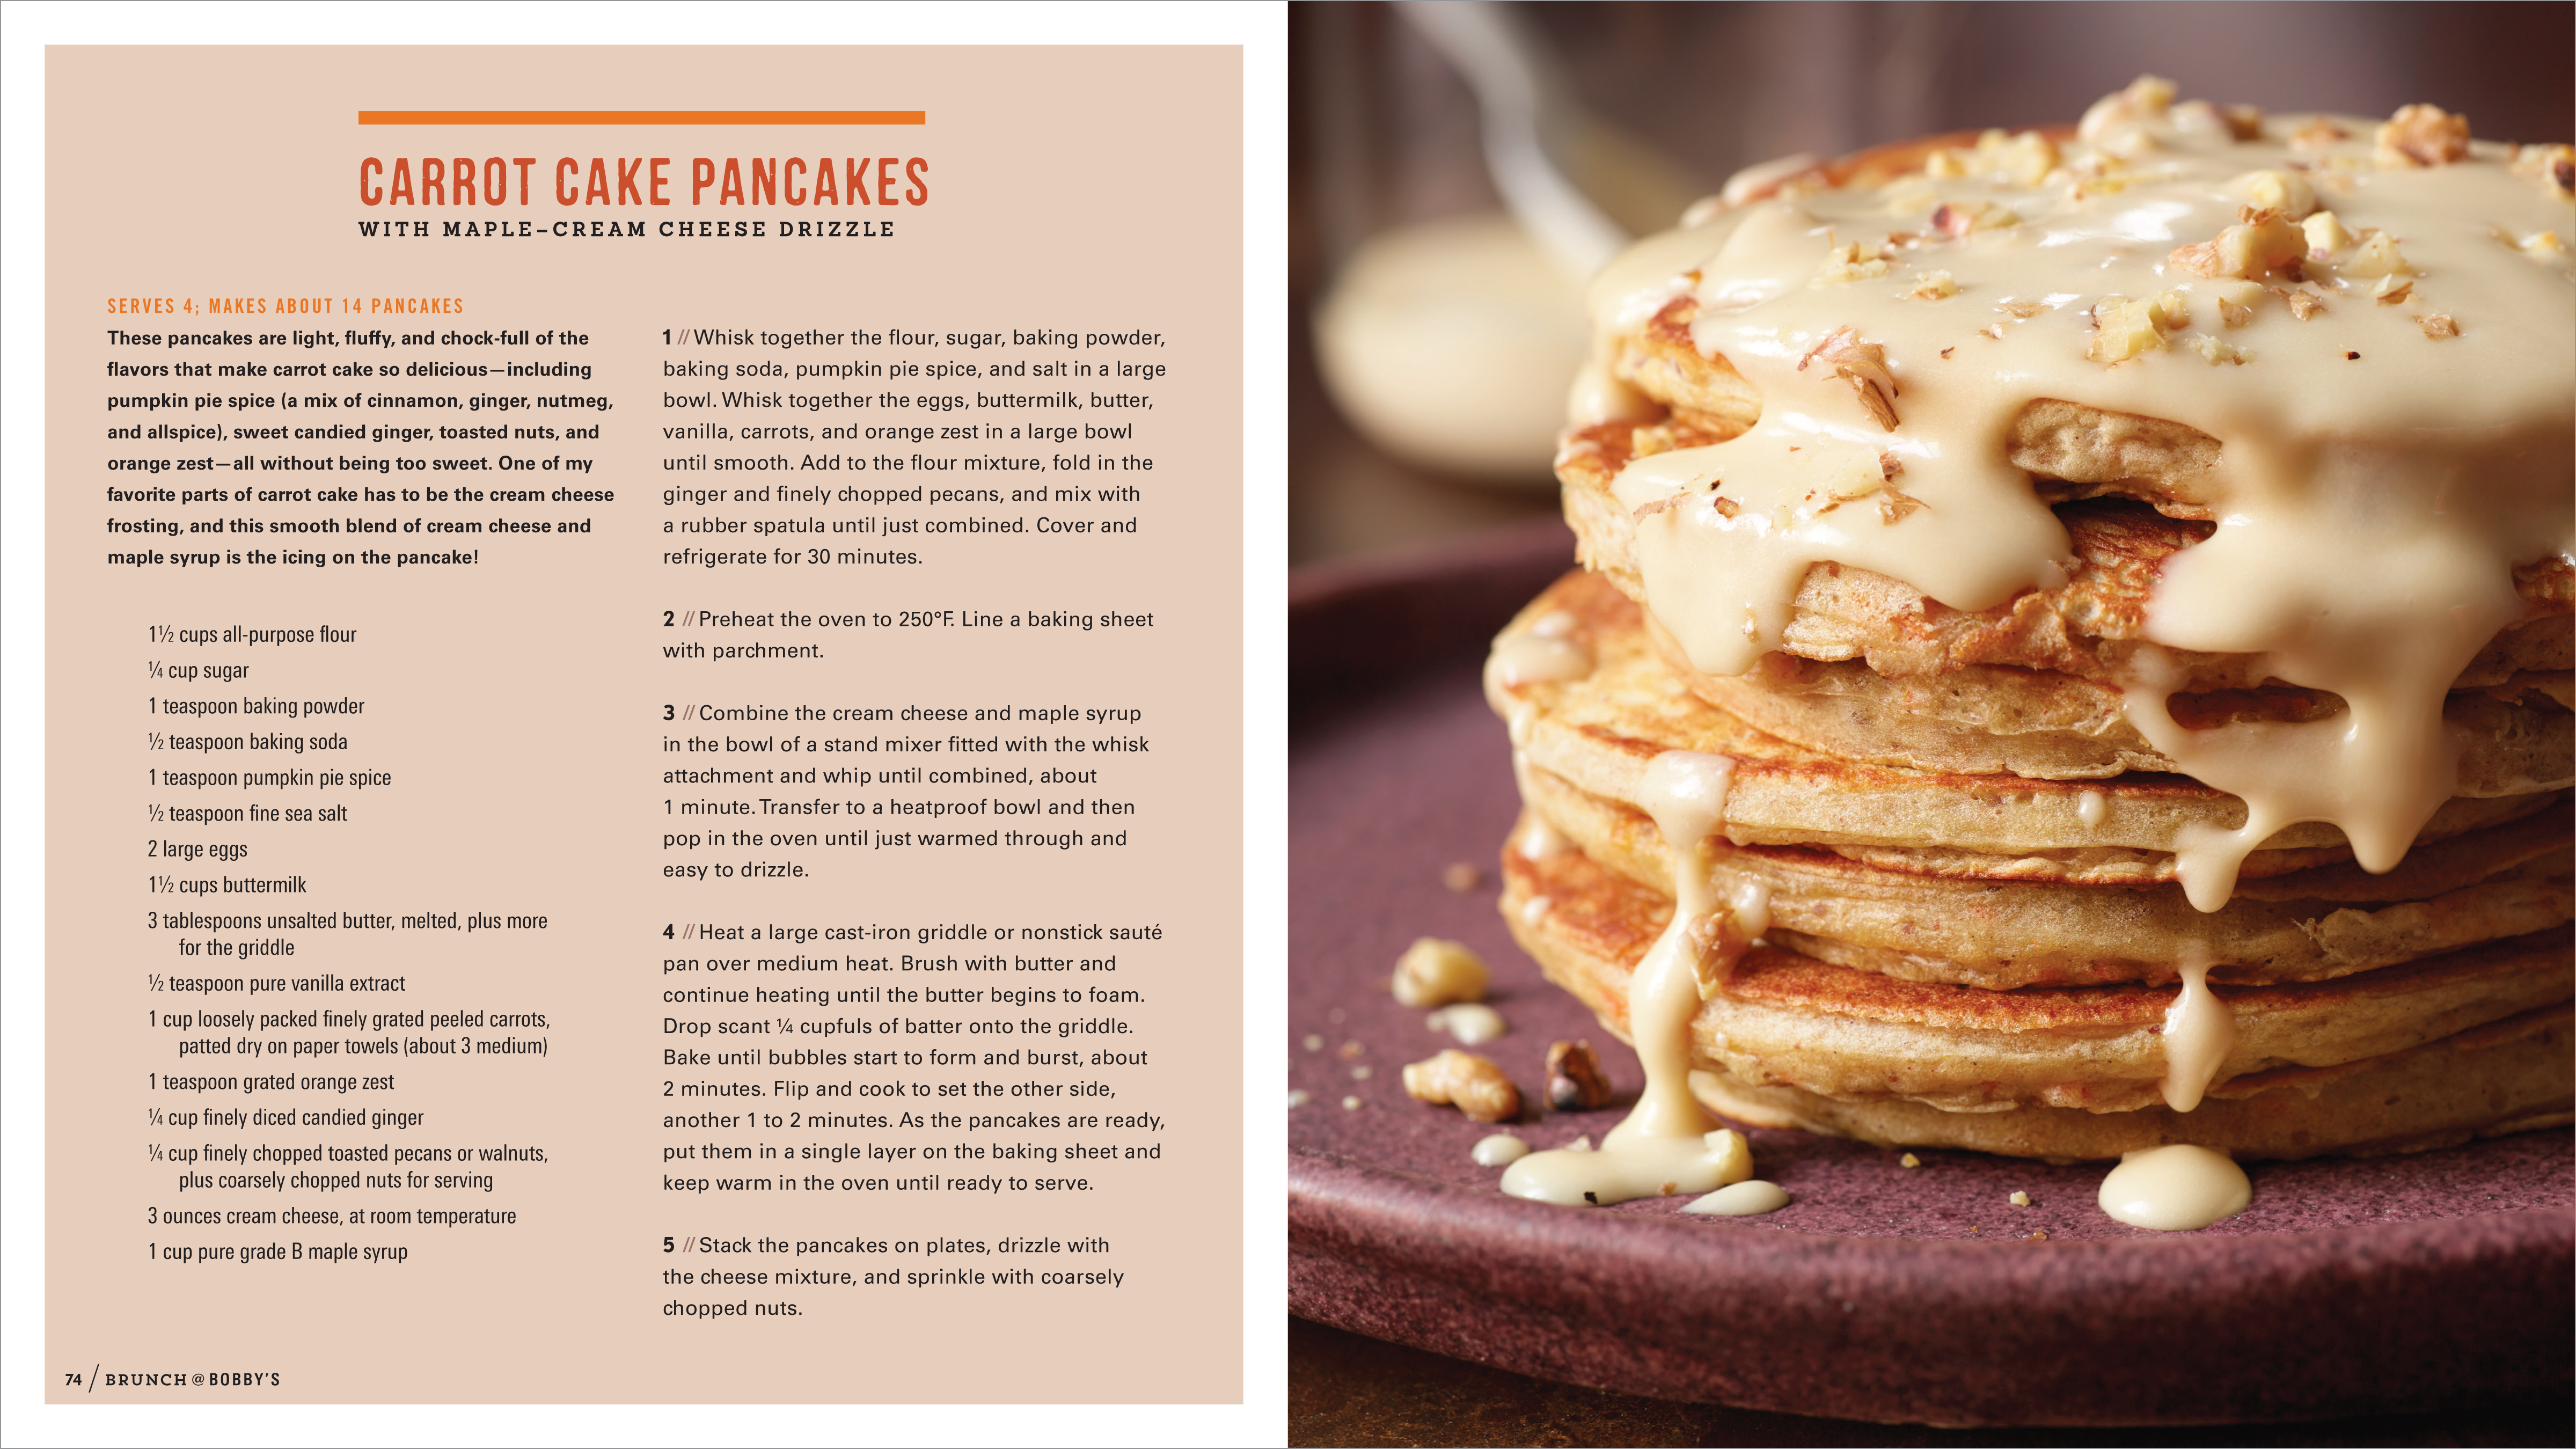 Carrot Cake Pancakes from Bobby Flay